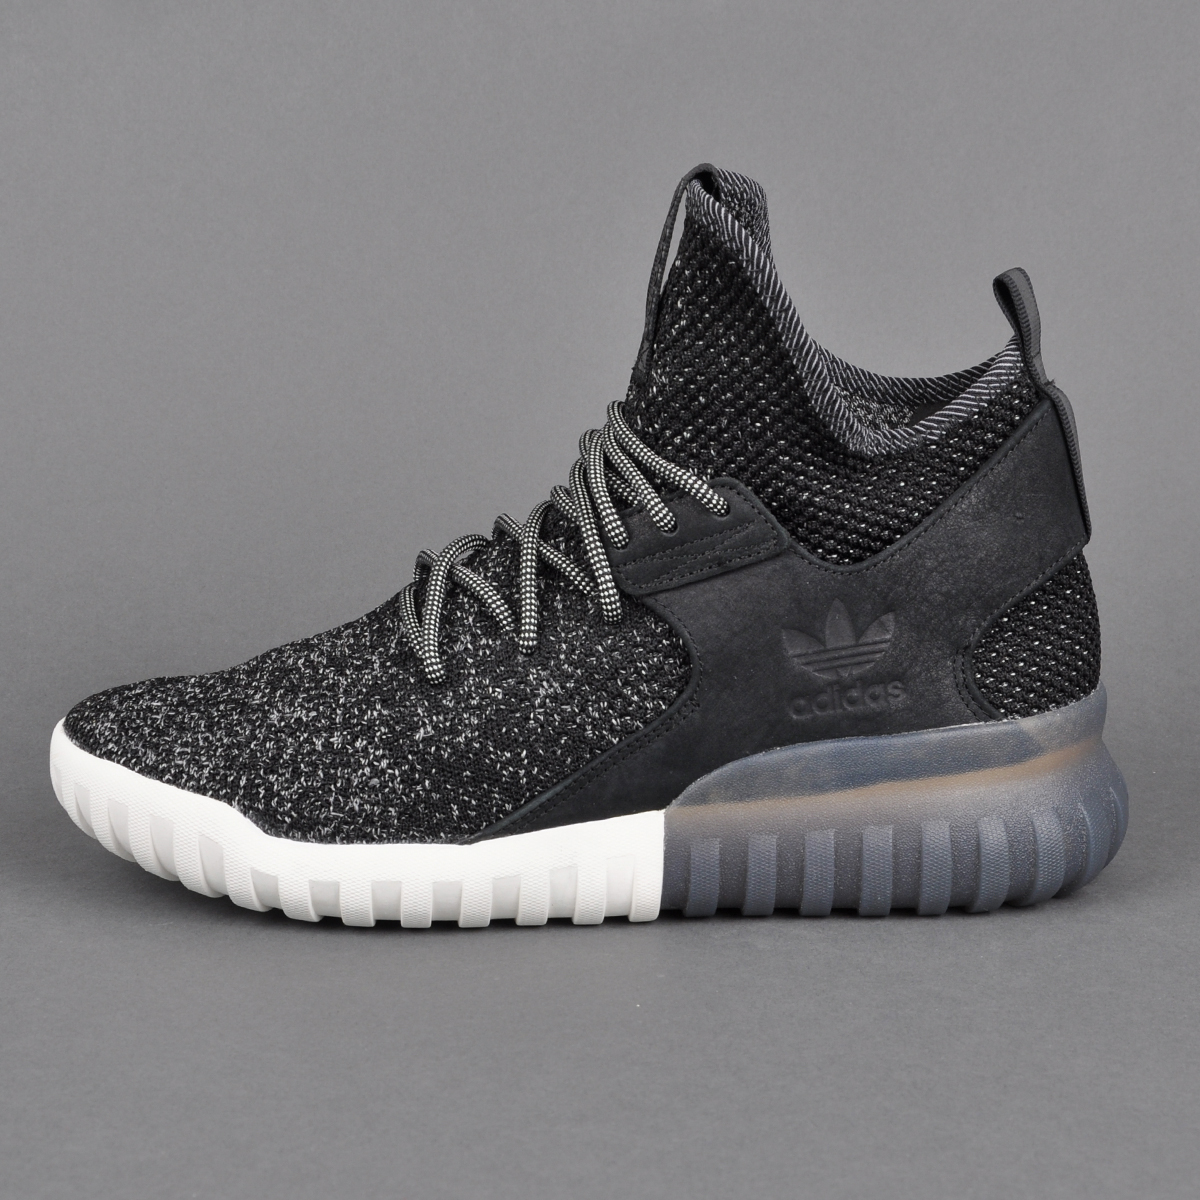 Adidas Men 's Tubular X Basketball Shoe Basketball